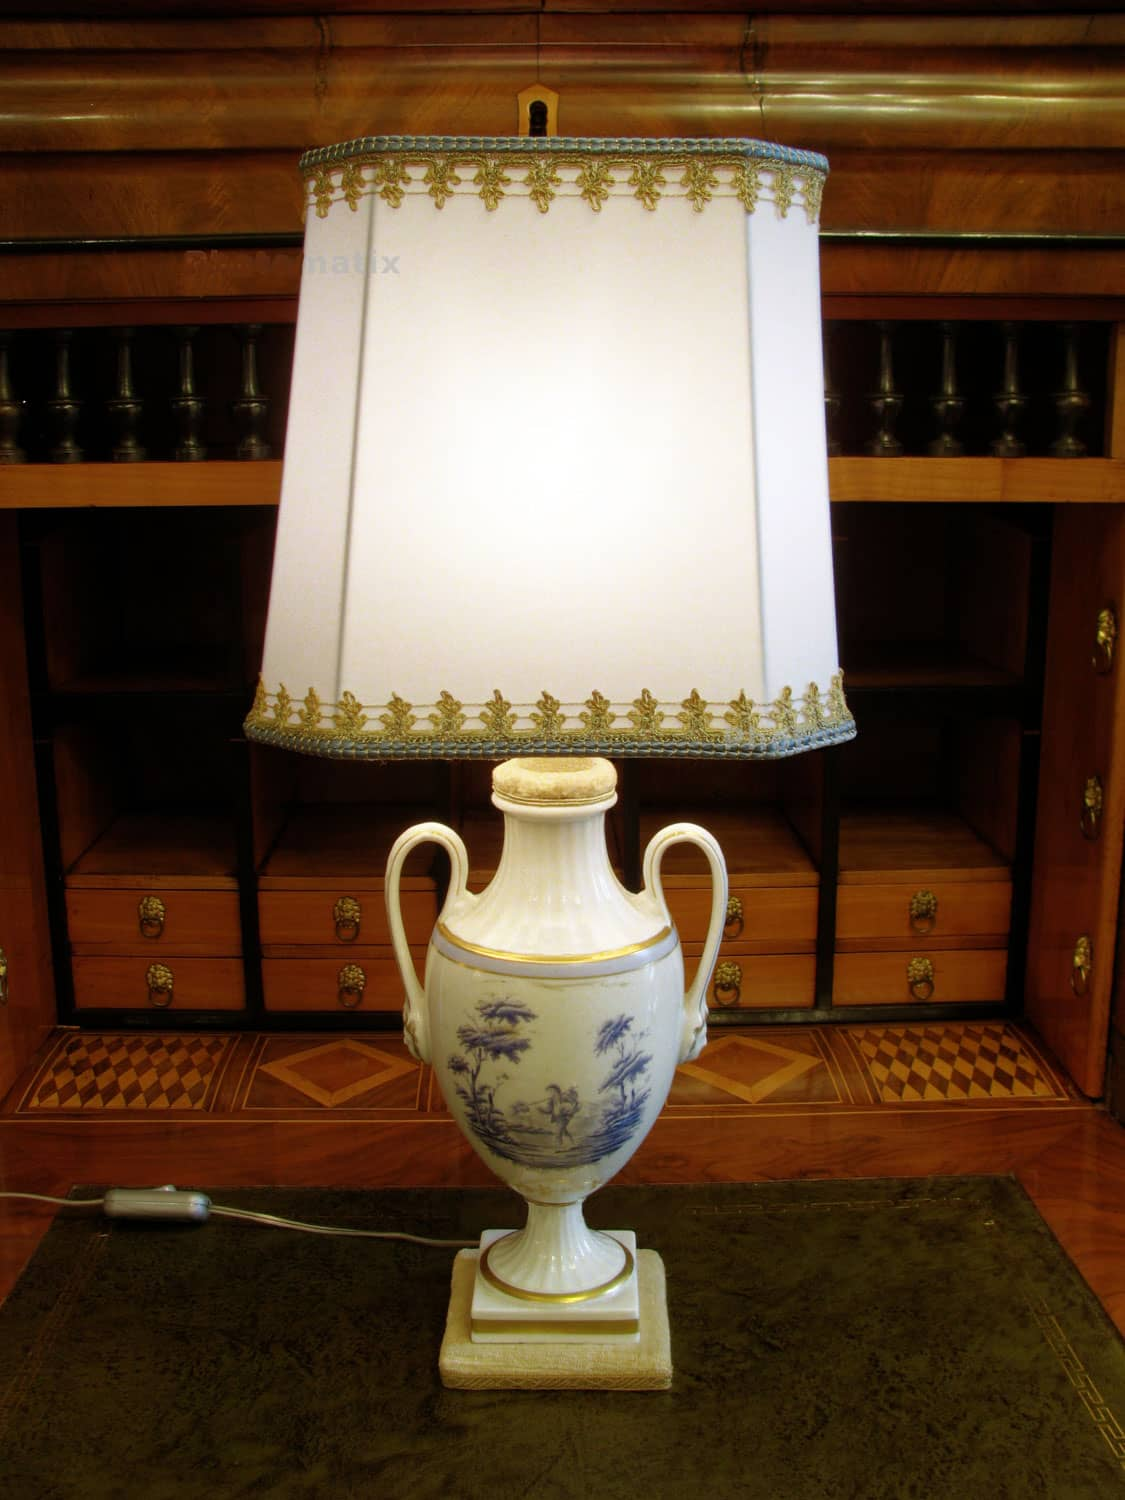 Italian Porcelain Table Lamp around 1950 s - Ghilli Antiques in Milano